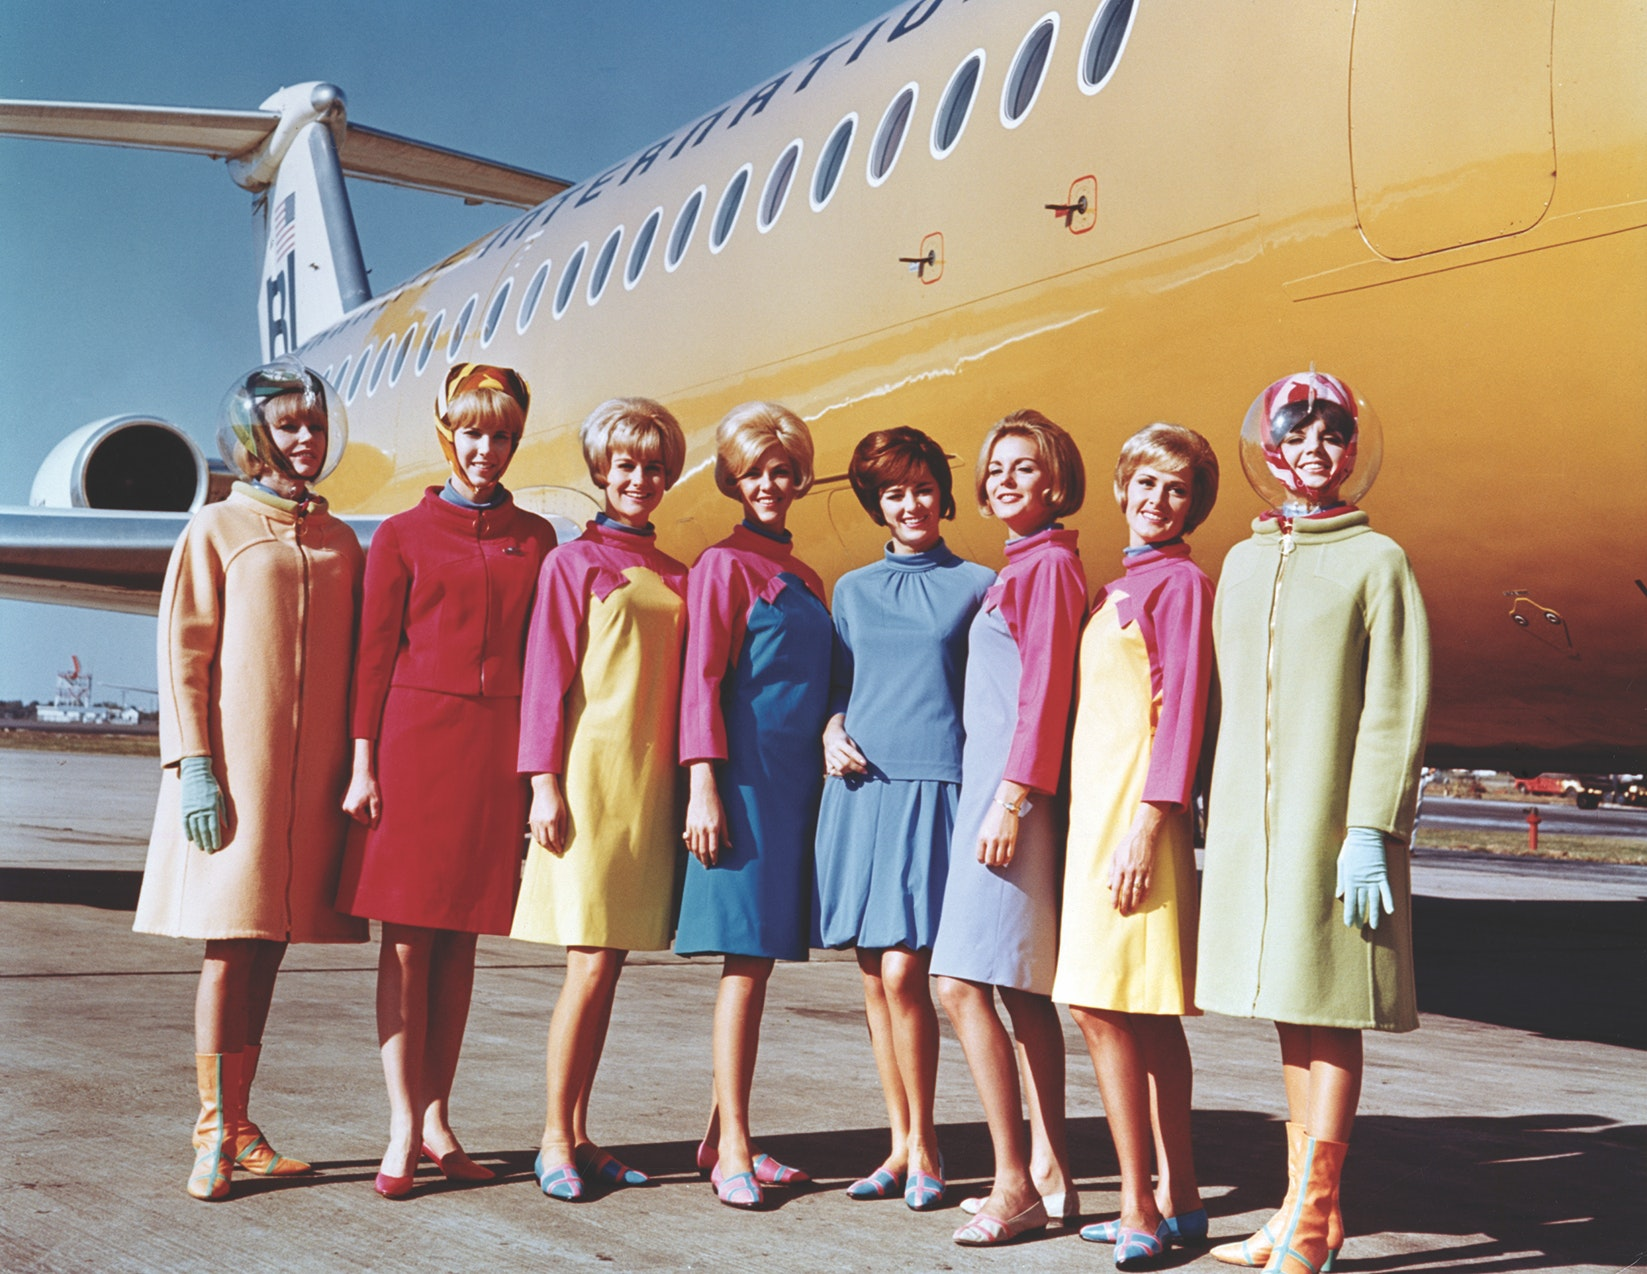 In the 1960s, psychedelic rainbow prints were signatures of Emilio Pucci's collection for the now-defunct U.S. airline Braniff International.